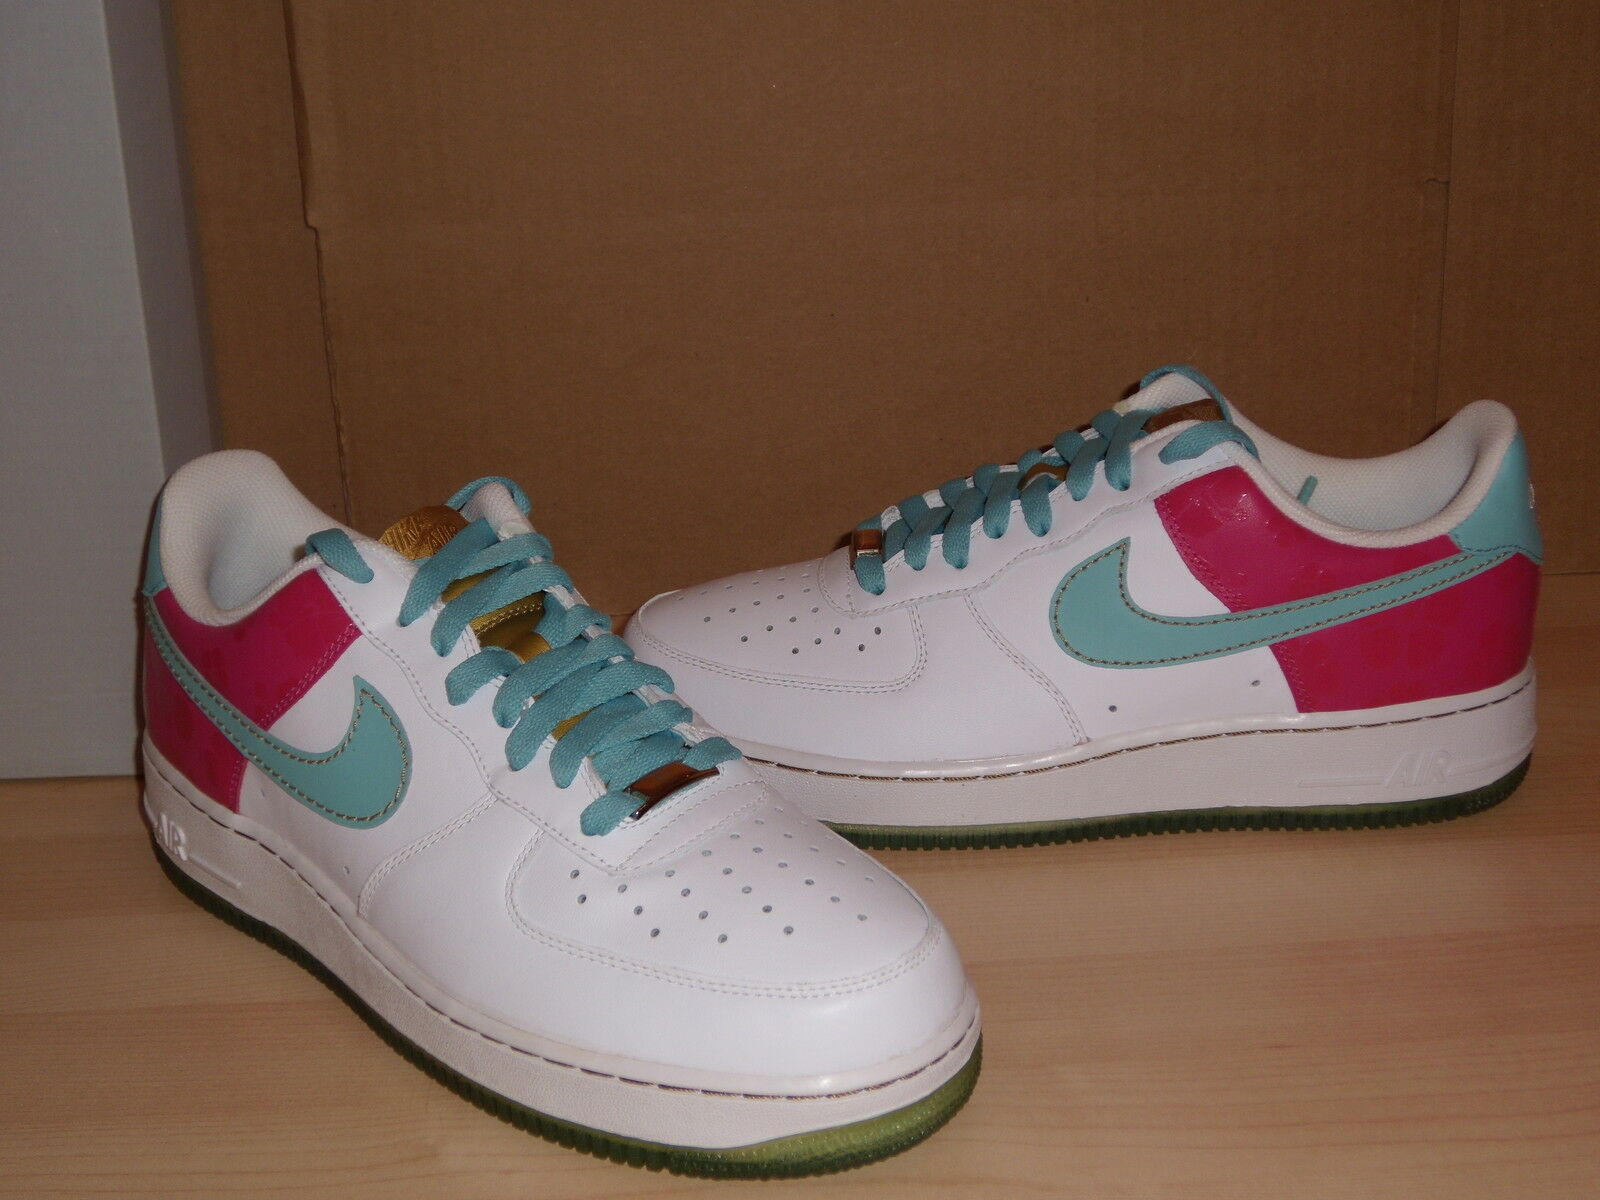 Air Force 1 07 Low So Cal Edition White Aqua Mens Shoes NIB Size 9.5